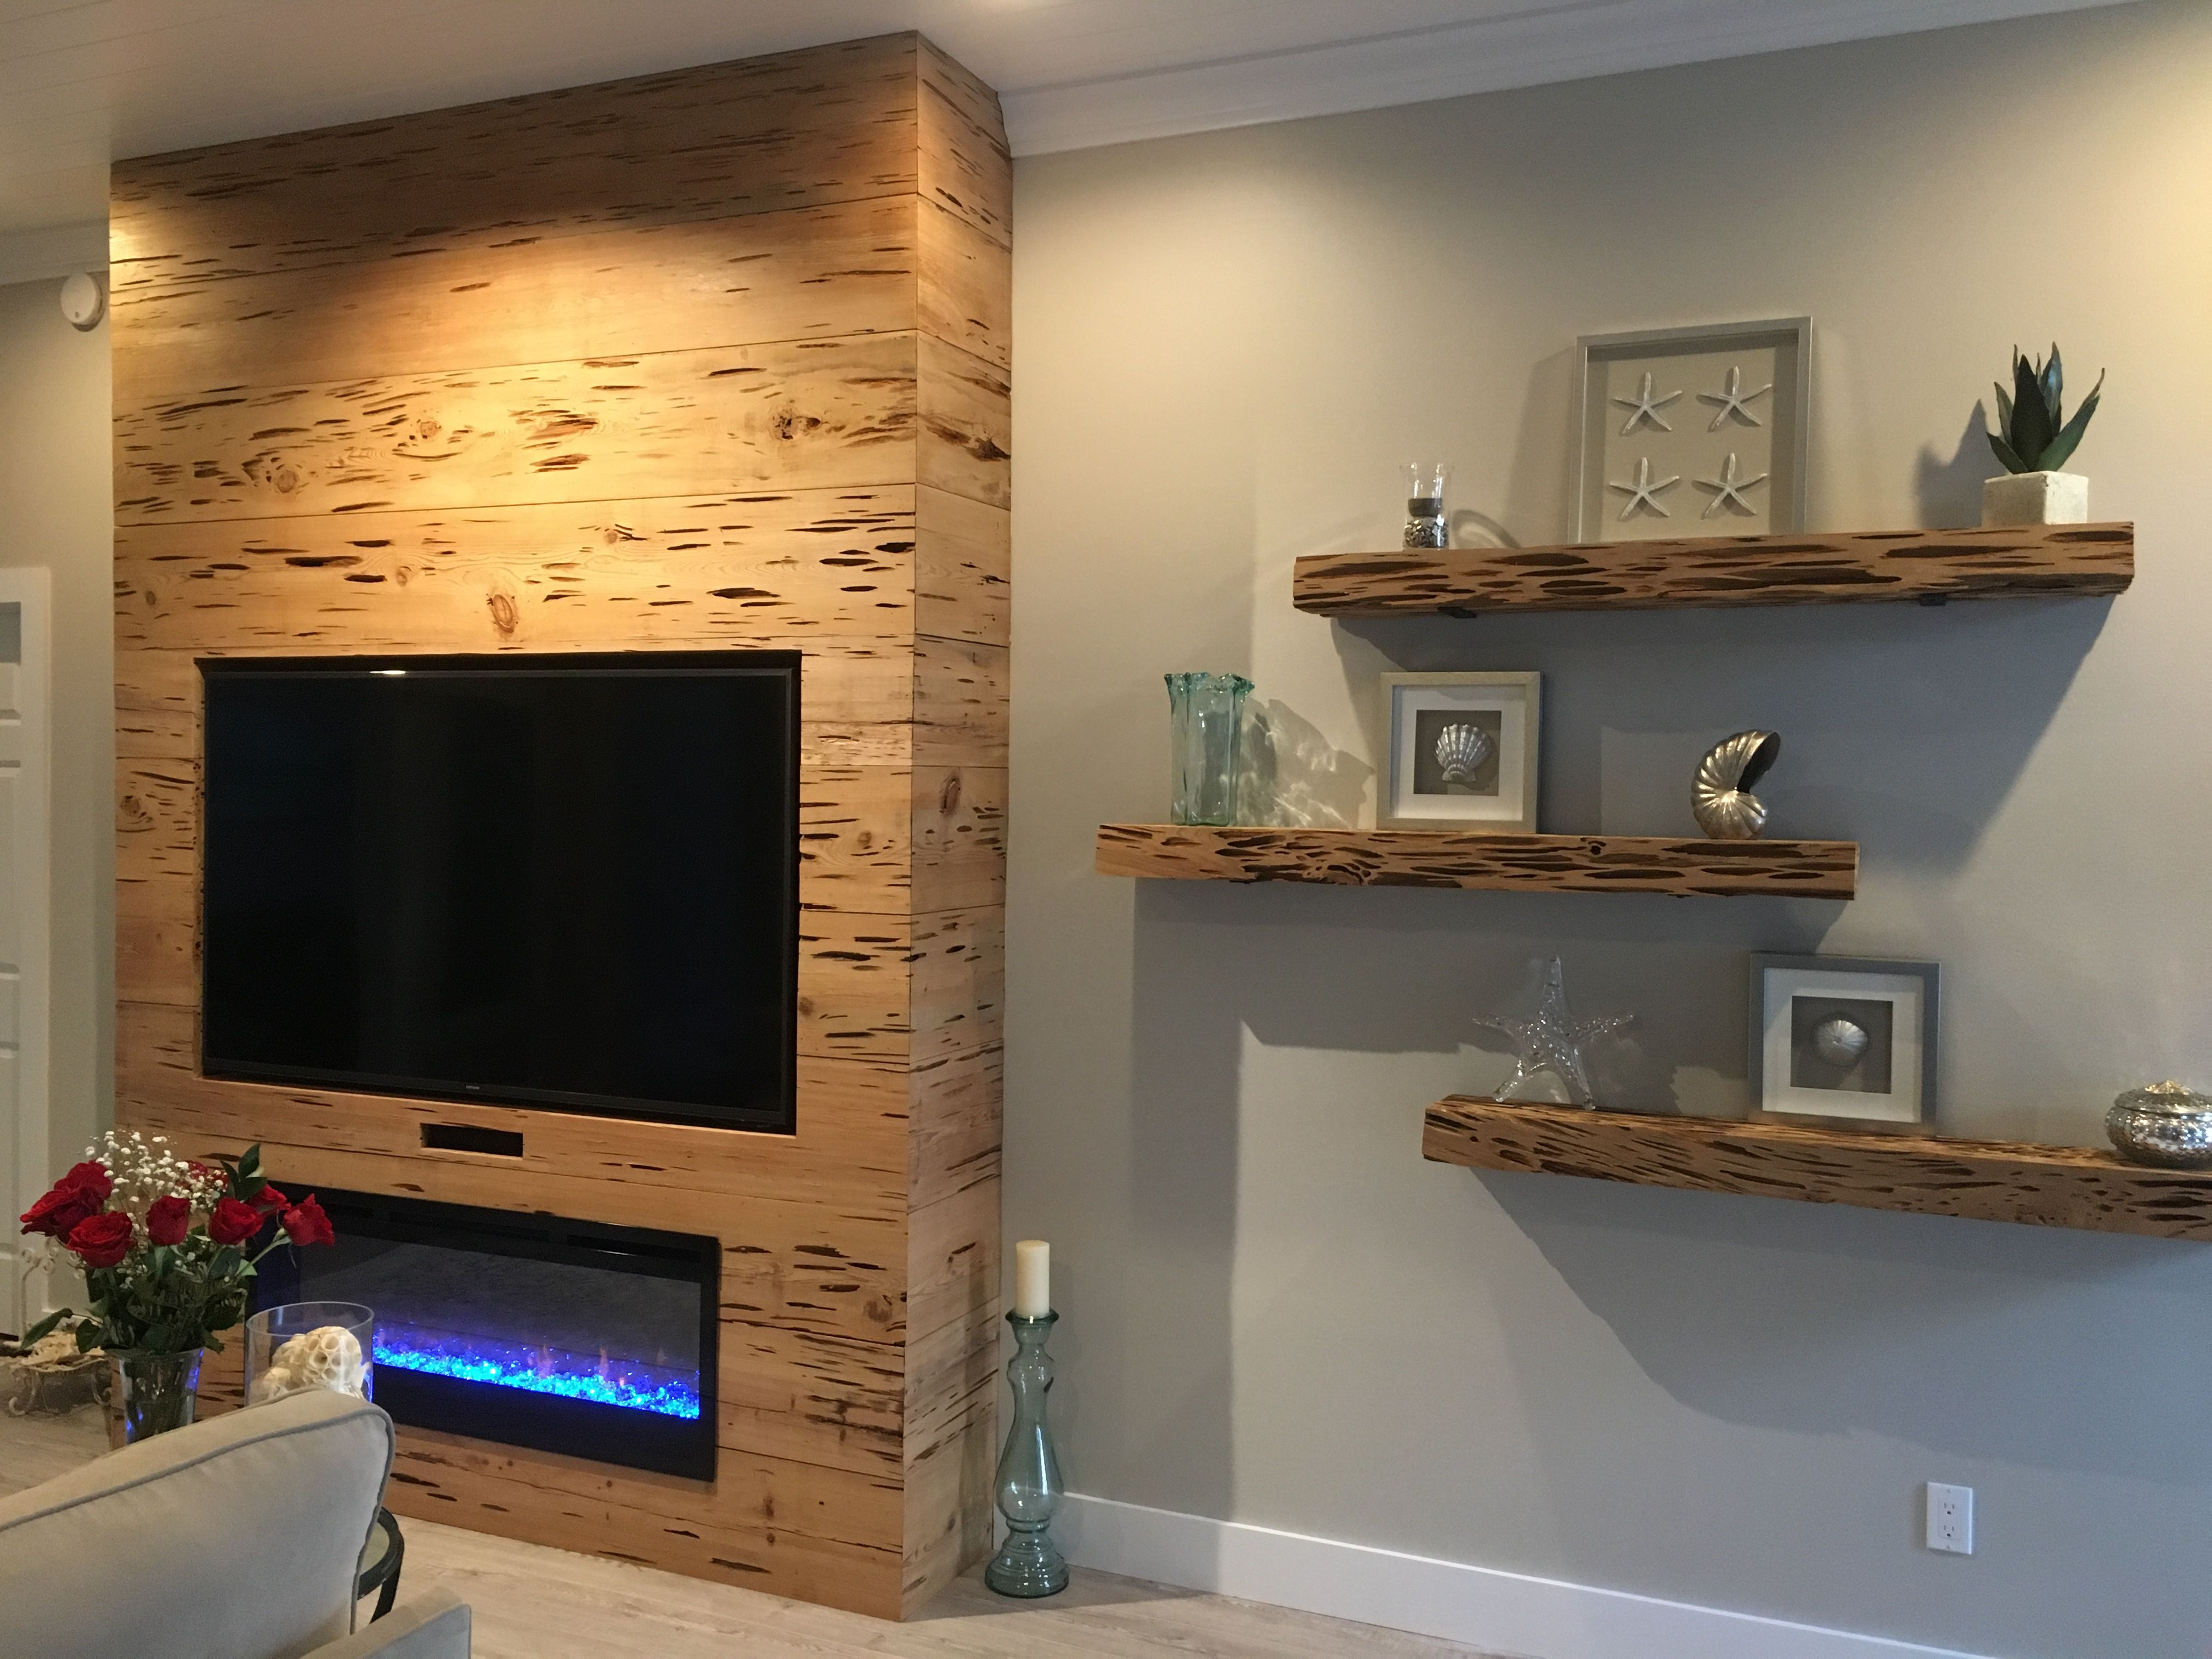 Pecky Cypress Fireplace Surround And Floating Shelves   Fireplace In